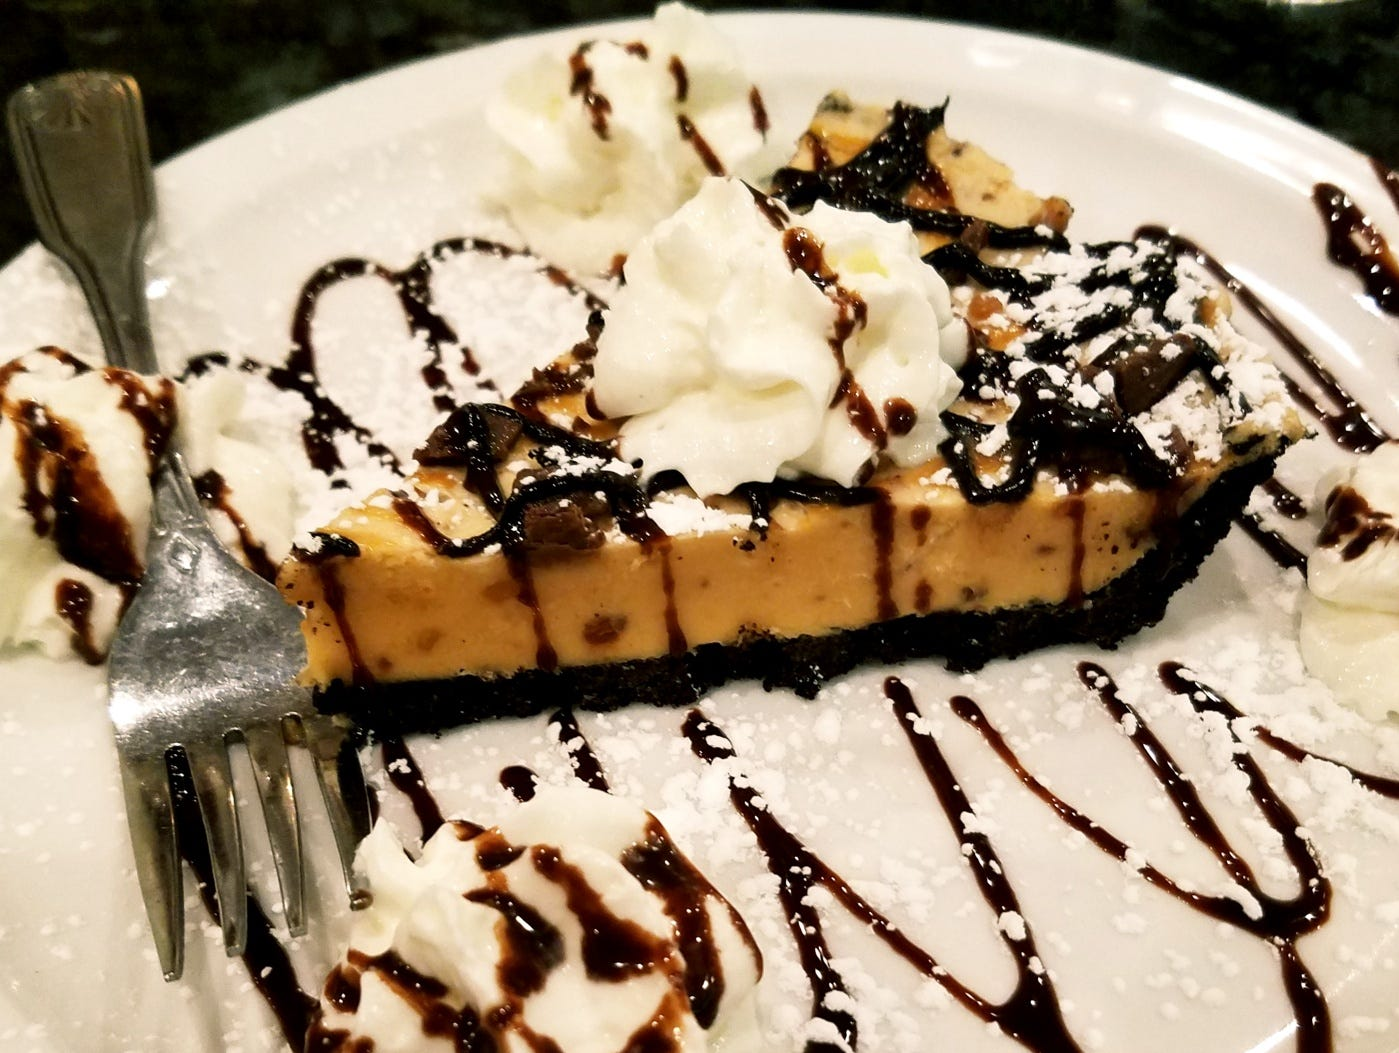 The peanut butter pie sat on a chocolate cookie crust with a filling of rich peanut butter studded with chocolate chips.